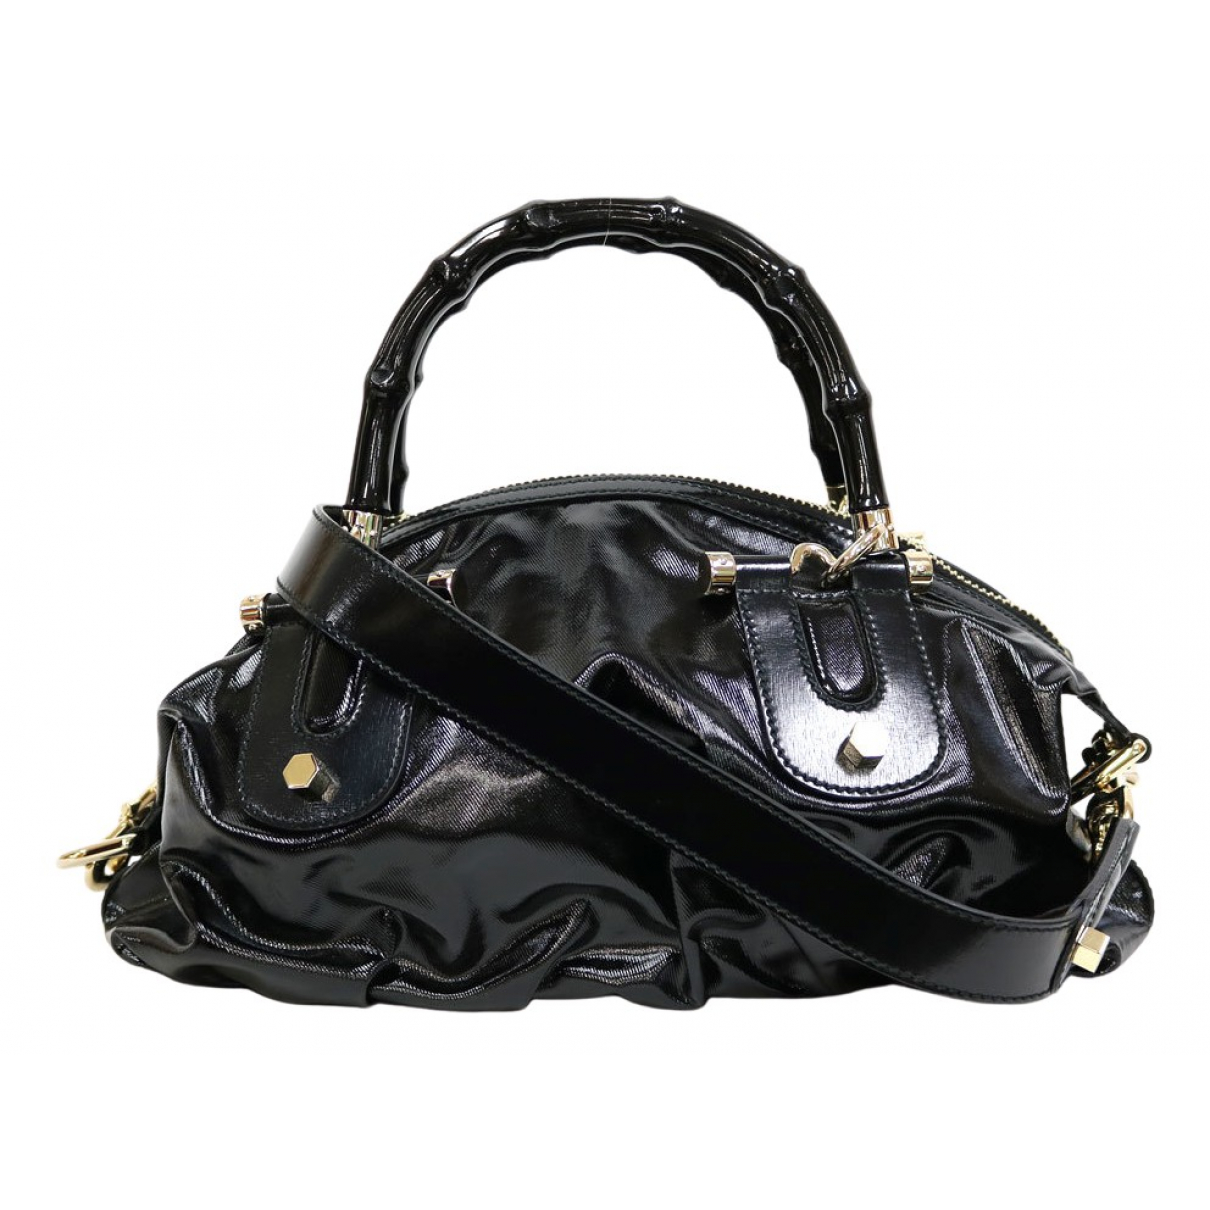 Gucci Bamboo Black Patent leather handbag for Women N